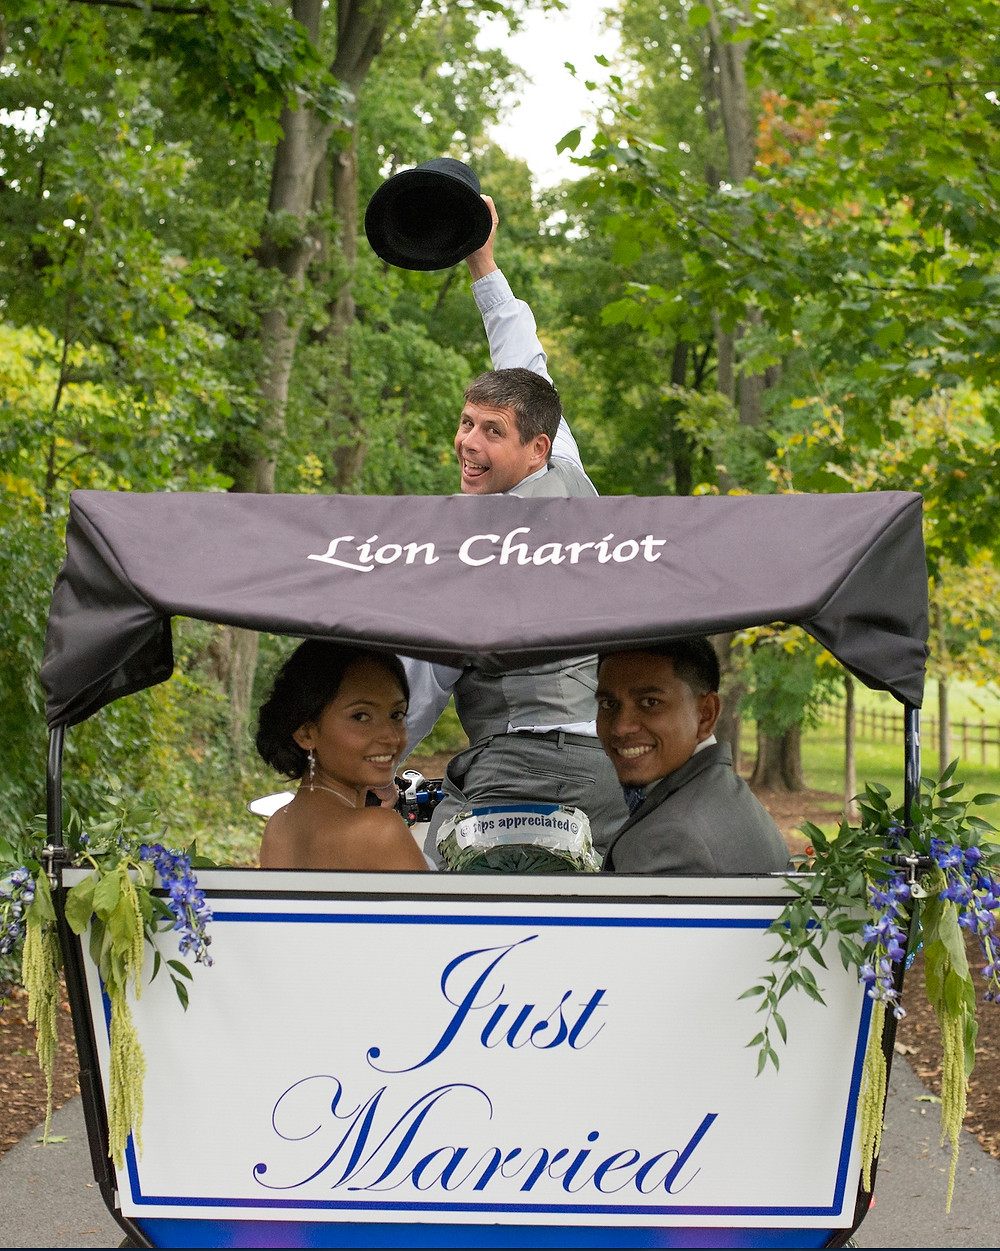 Vamos! Lion Chariot: Eco-friendly wedding transportation